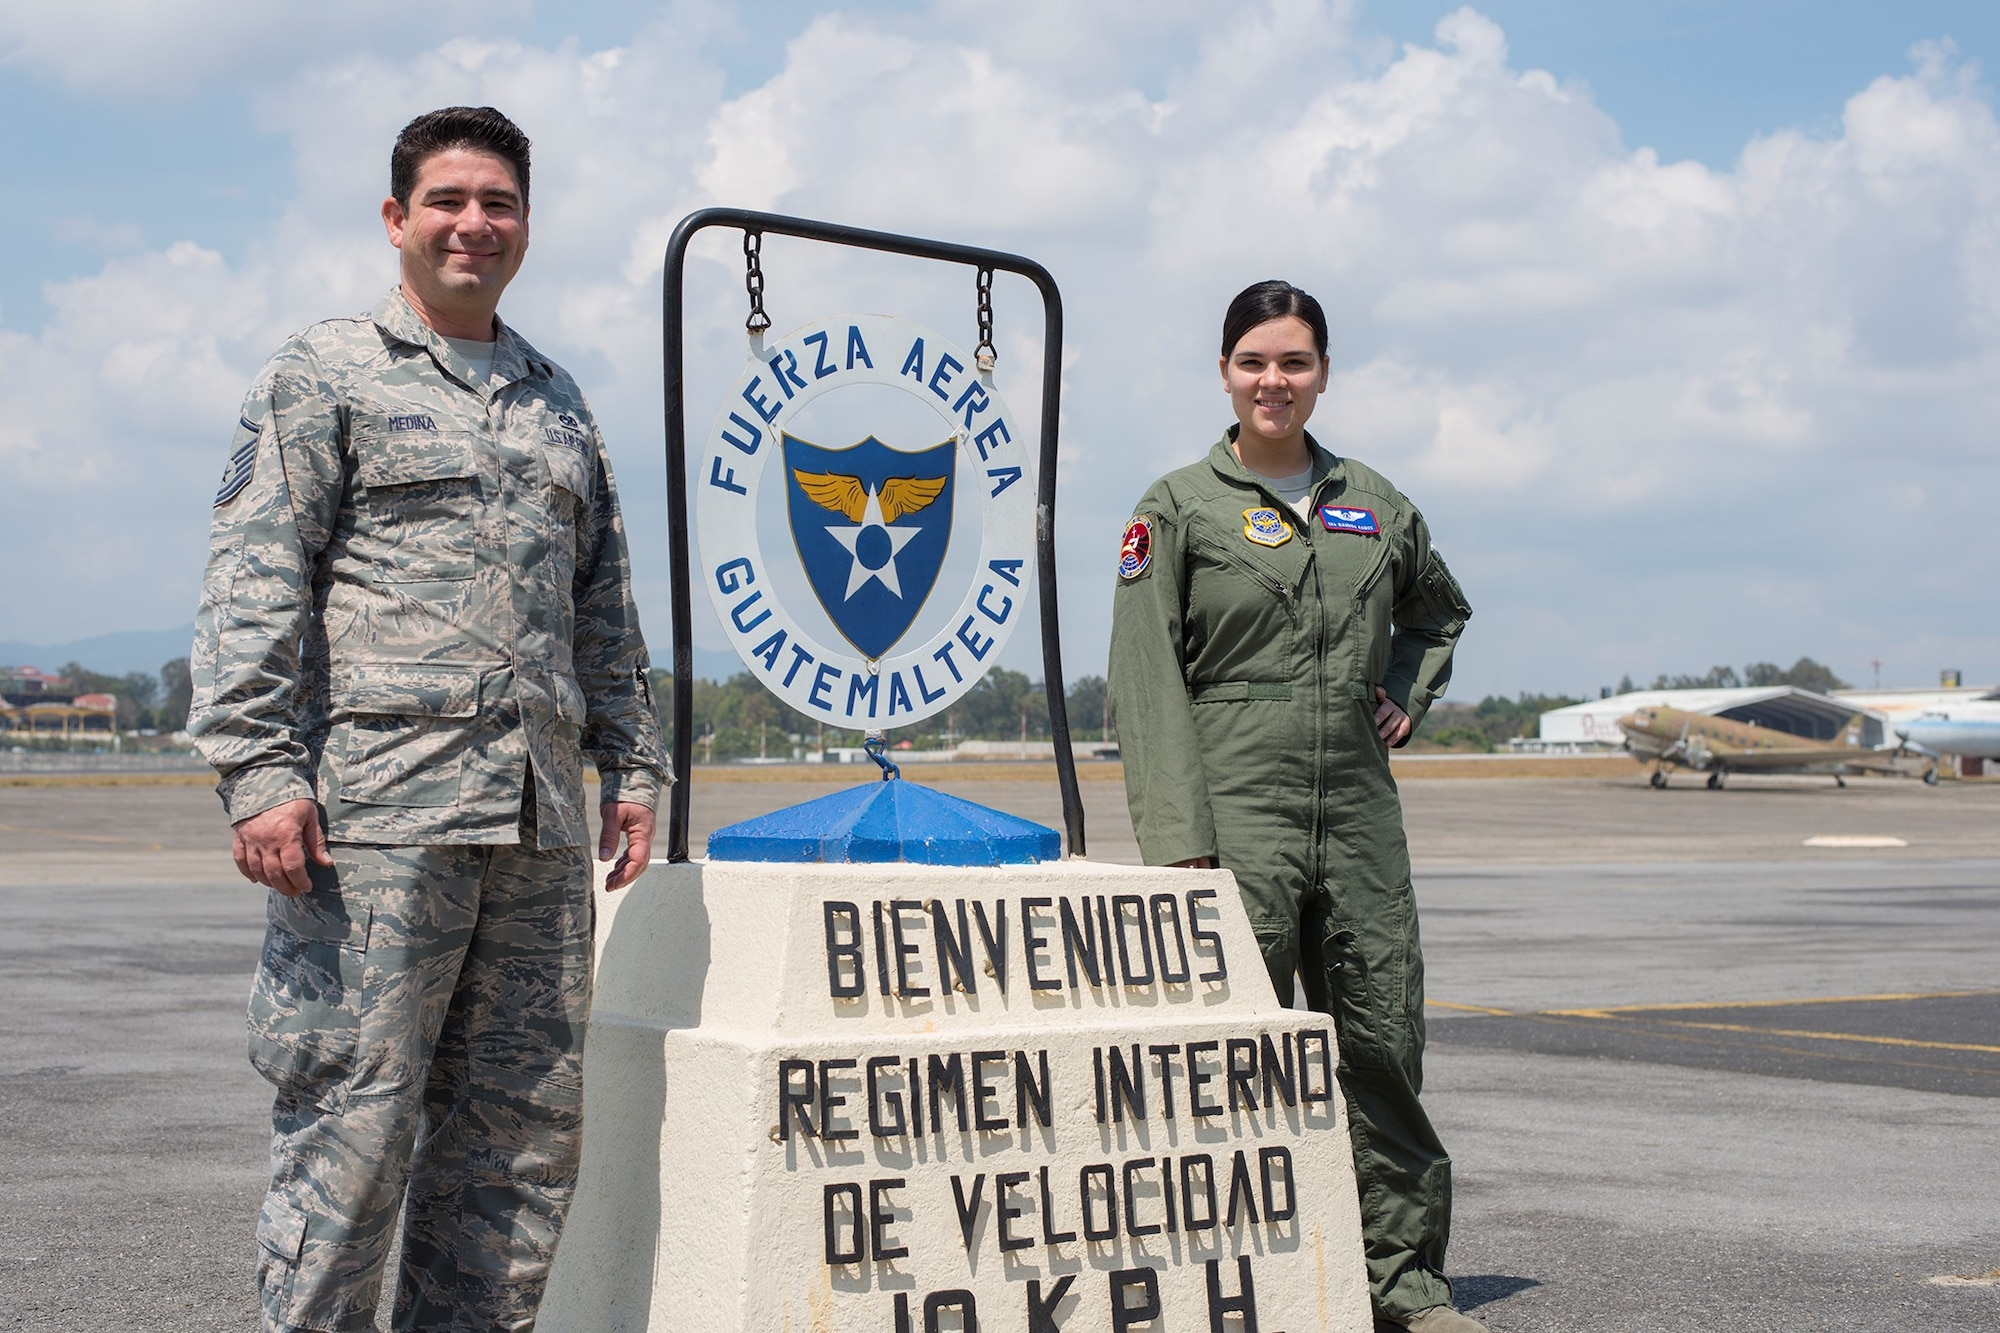 Master Sgt. Alejandro Medina, 571st Mobility Support Advisory Squadron air advisor, takes a picture with his daughter Senior Airman Giannina, sensor operator at Creech AFB, Nevada, during a training mission at La Aurora Air Base, Guatemala.